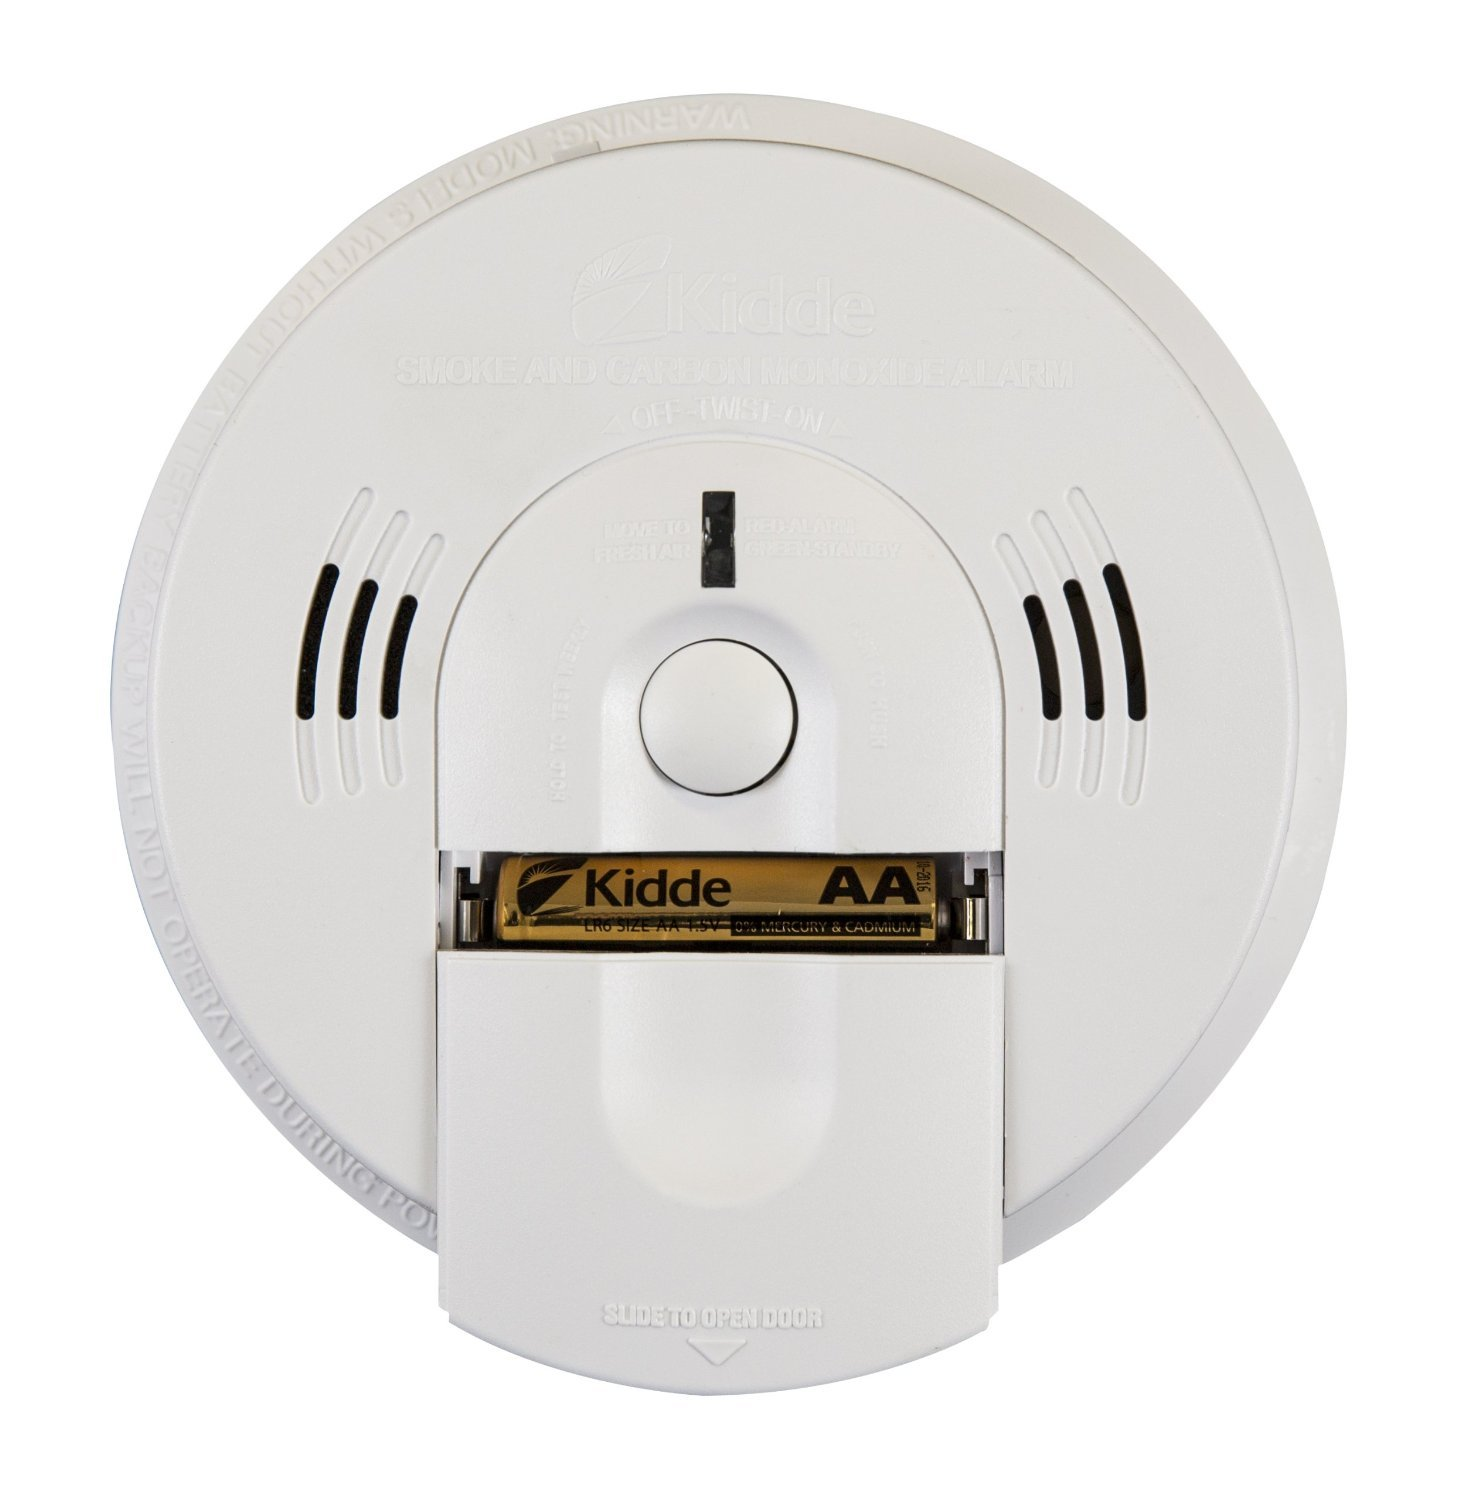 Combination Smoke Detector Wiring Diagram Worksheet And Delco 3l7t10e947ag34n1 Kidde Kn Cosm Iba Hardwire Carbon Monoxide Alarm Rh Amazon Com Internal Electrical